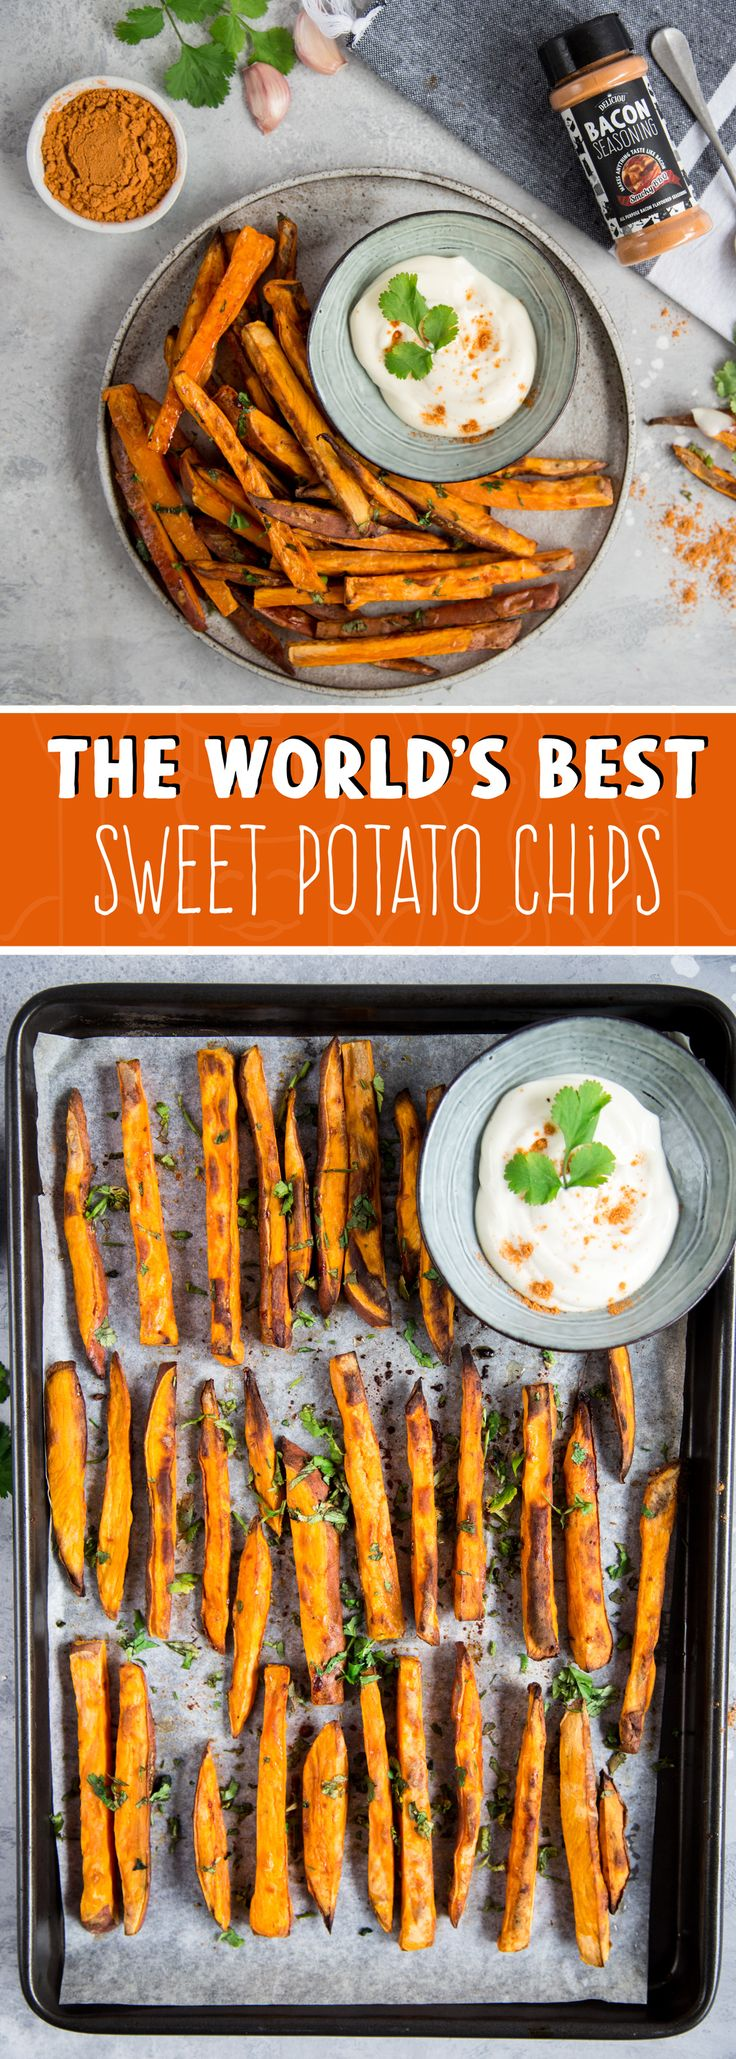 These sweet potato chips are the best in the world! Seasoned with the infamous Bacon Seasoning from Deliciou this snack will blow your taste buds away!